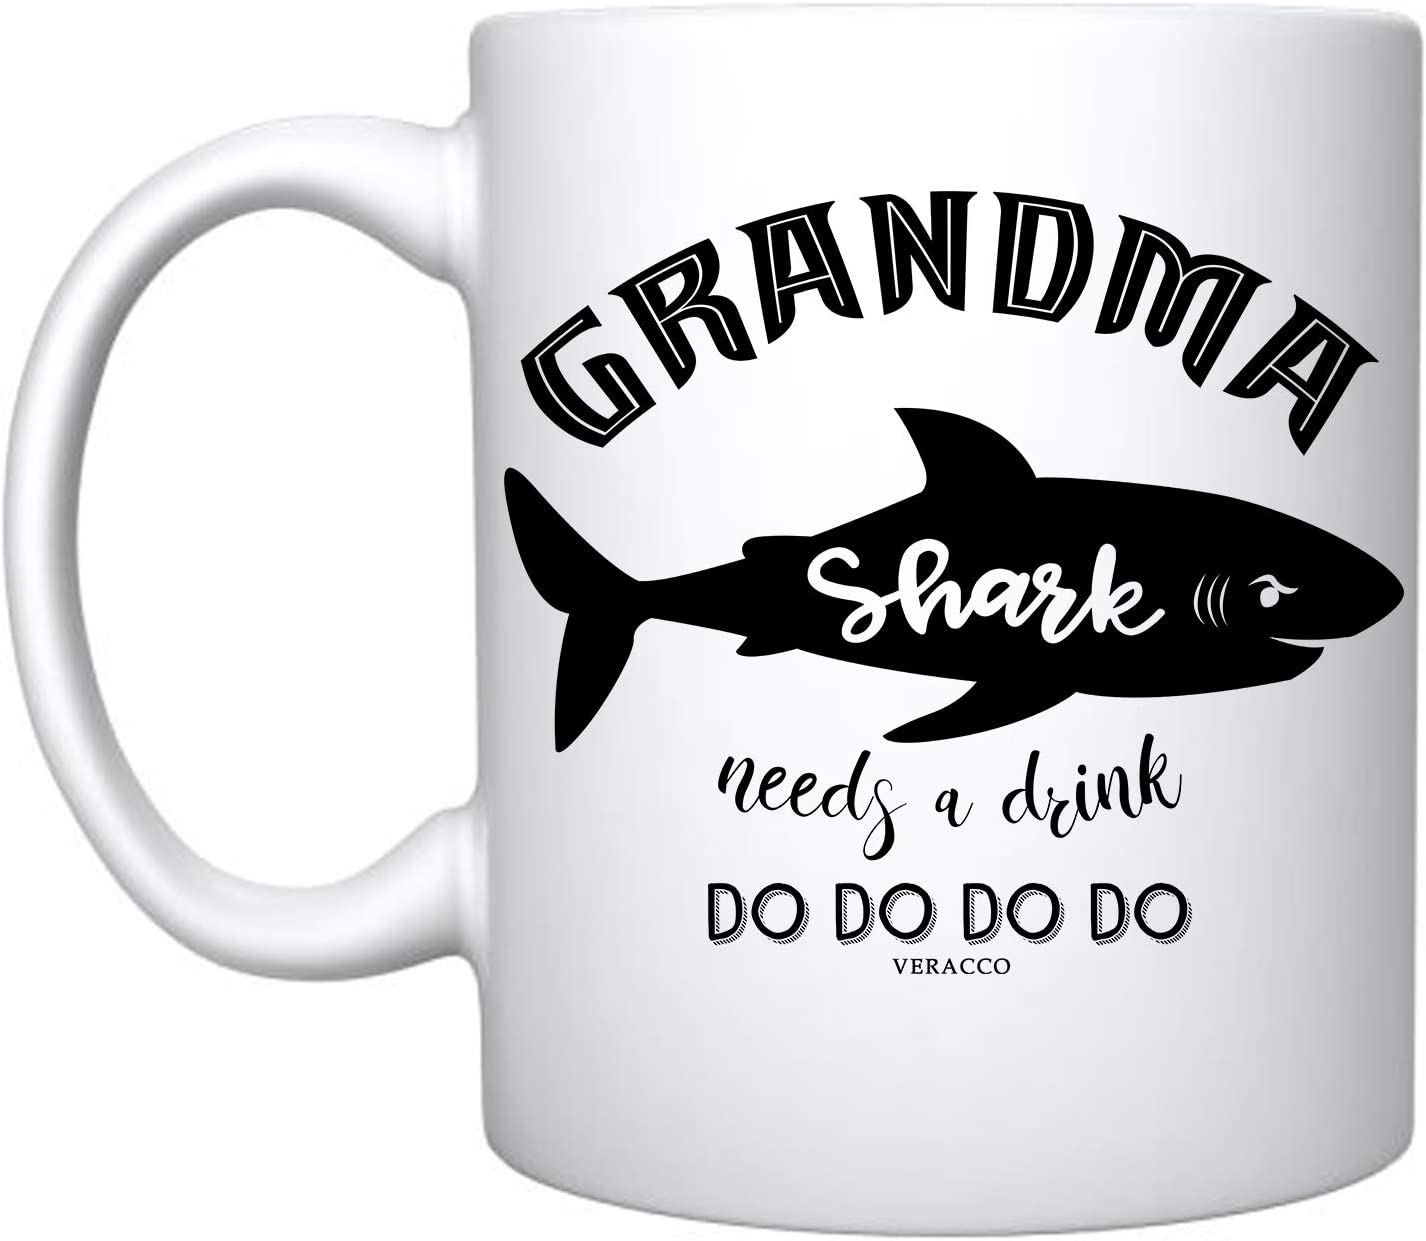 Veracco Grandma Shark Needs a Drink Ceramic Coffee Mug Funny Shark Mother's Day Gifts For Granny Nana